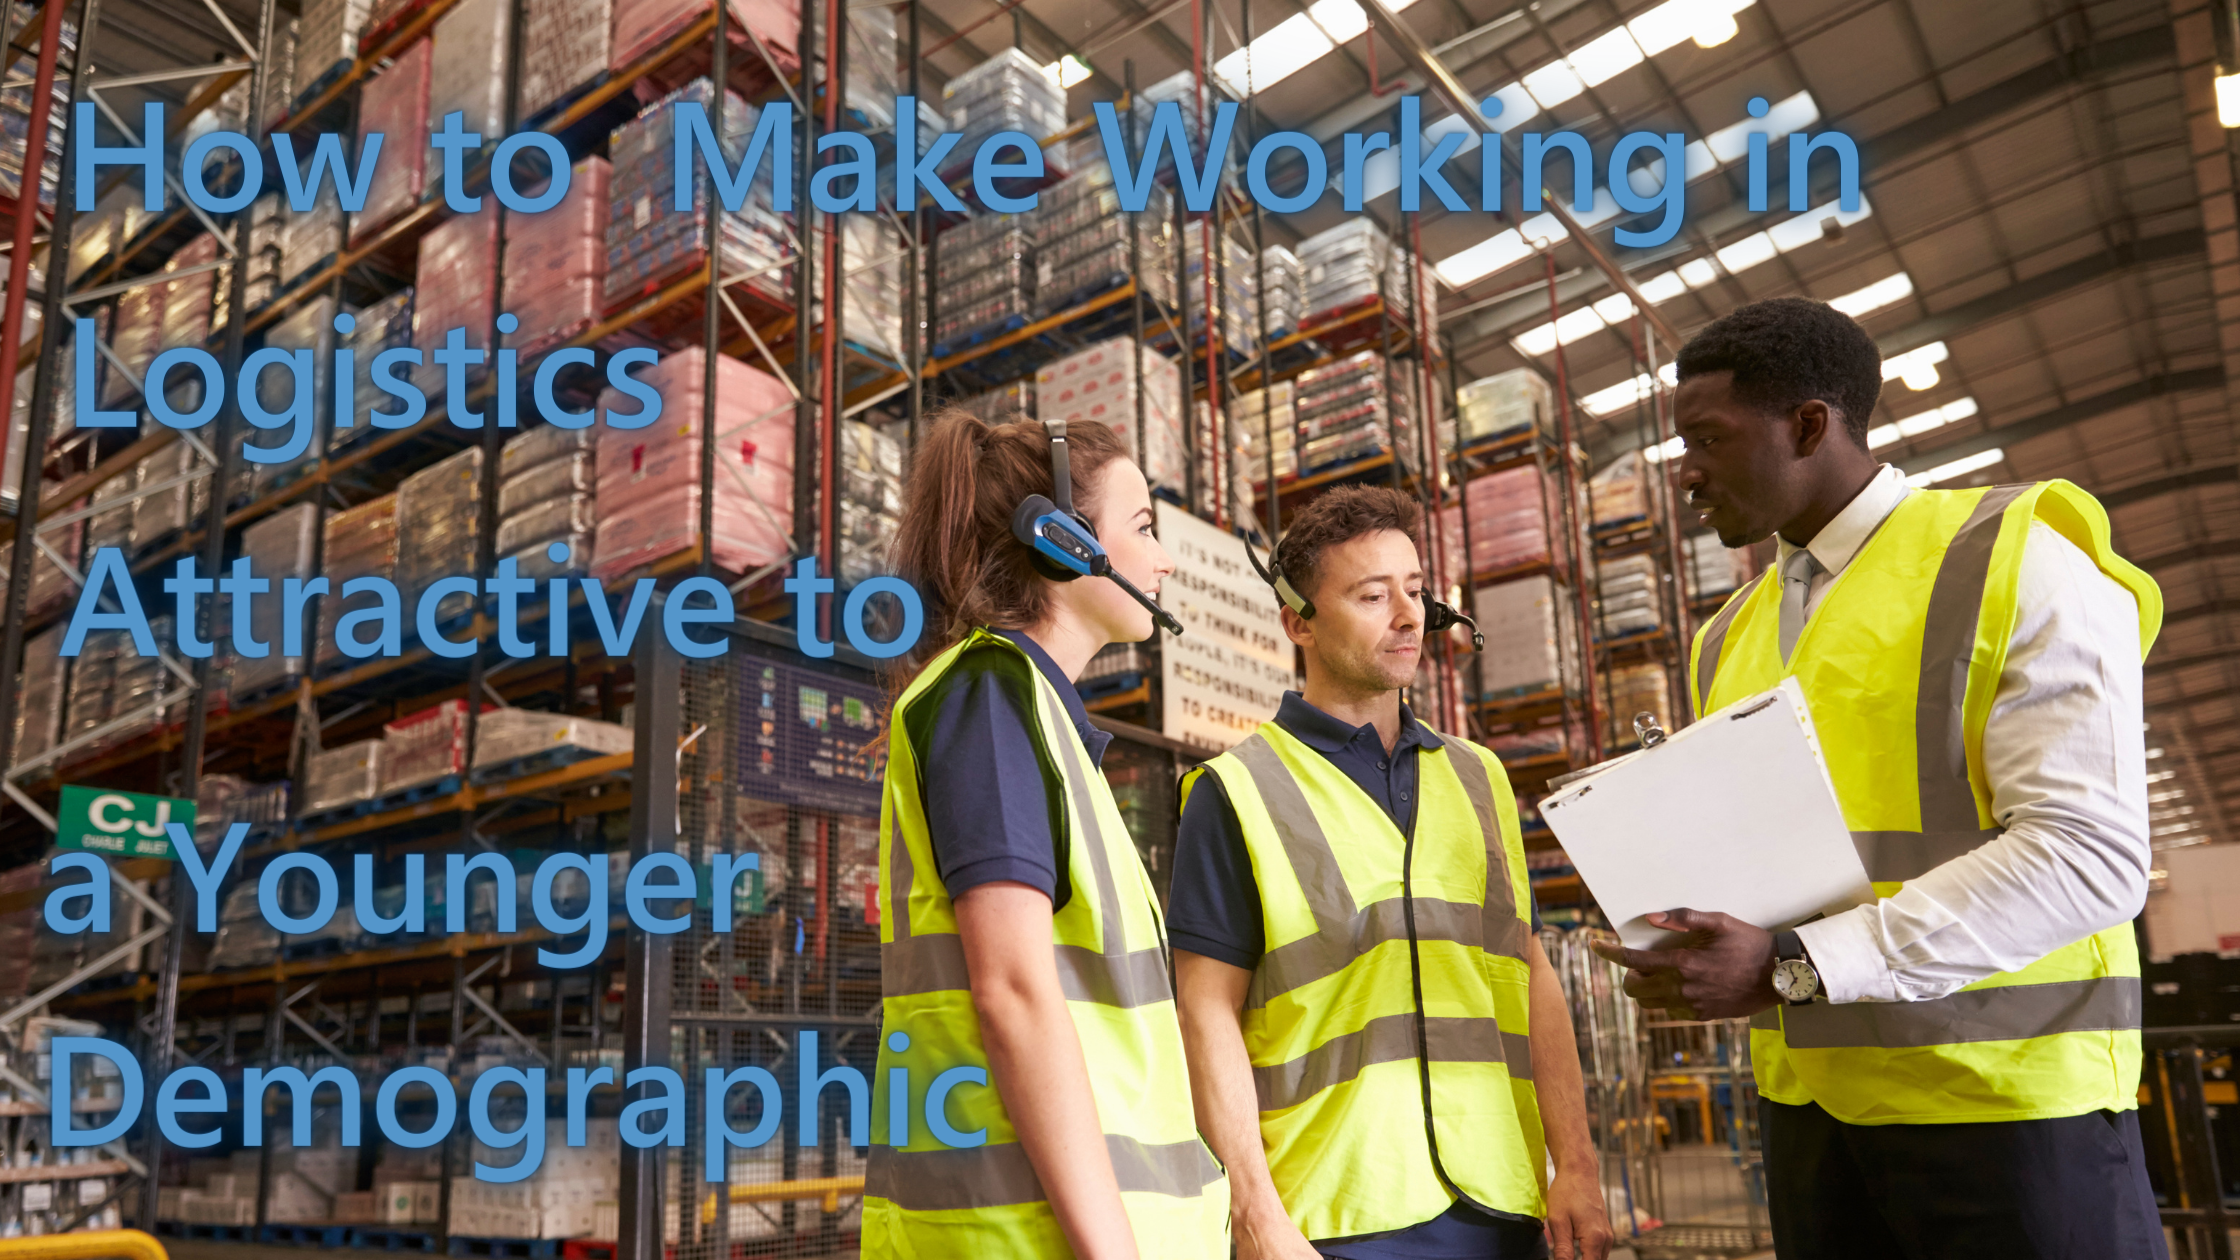 How to Make Working in Logistics